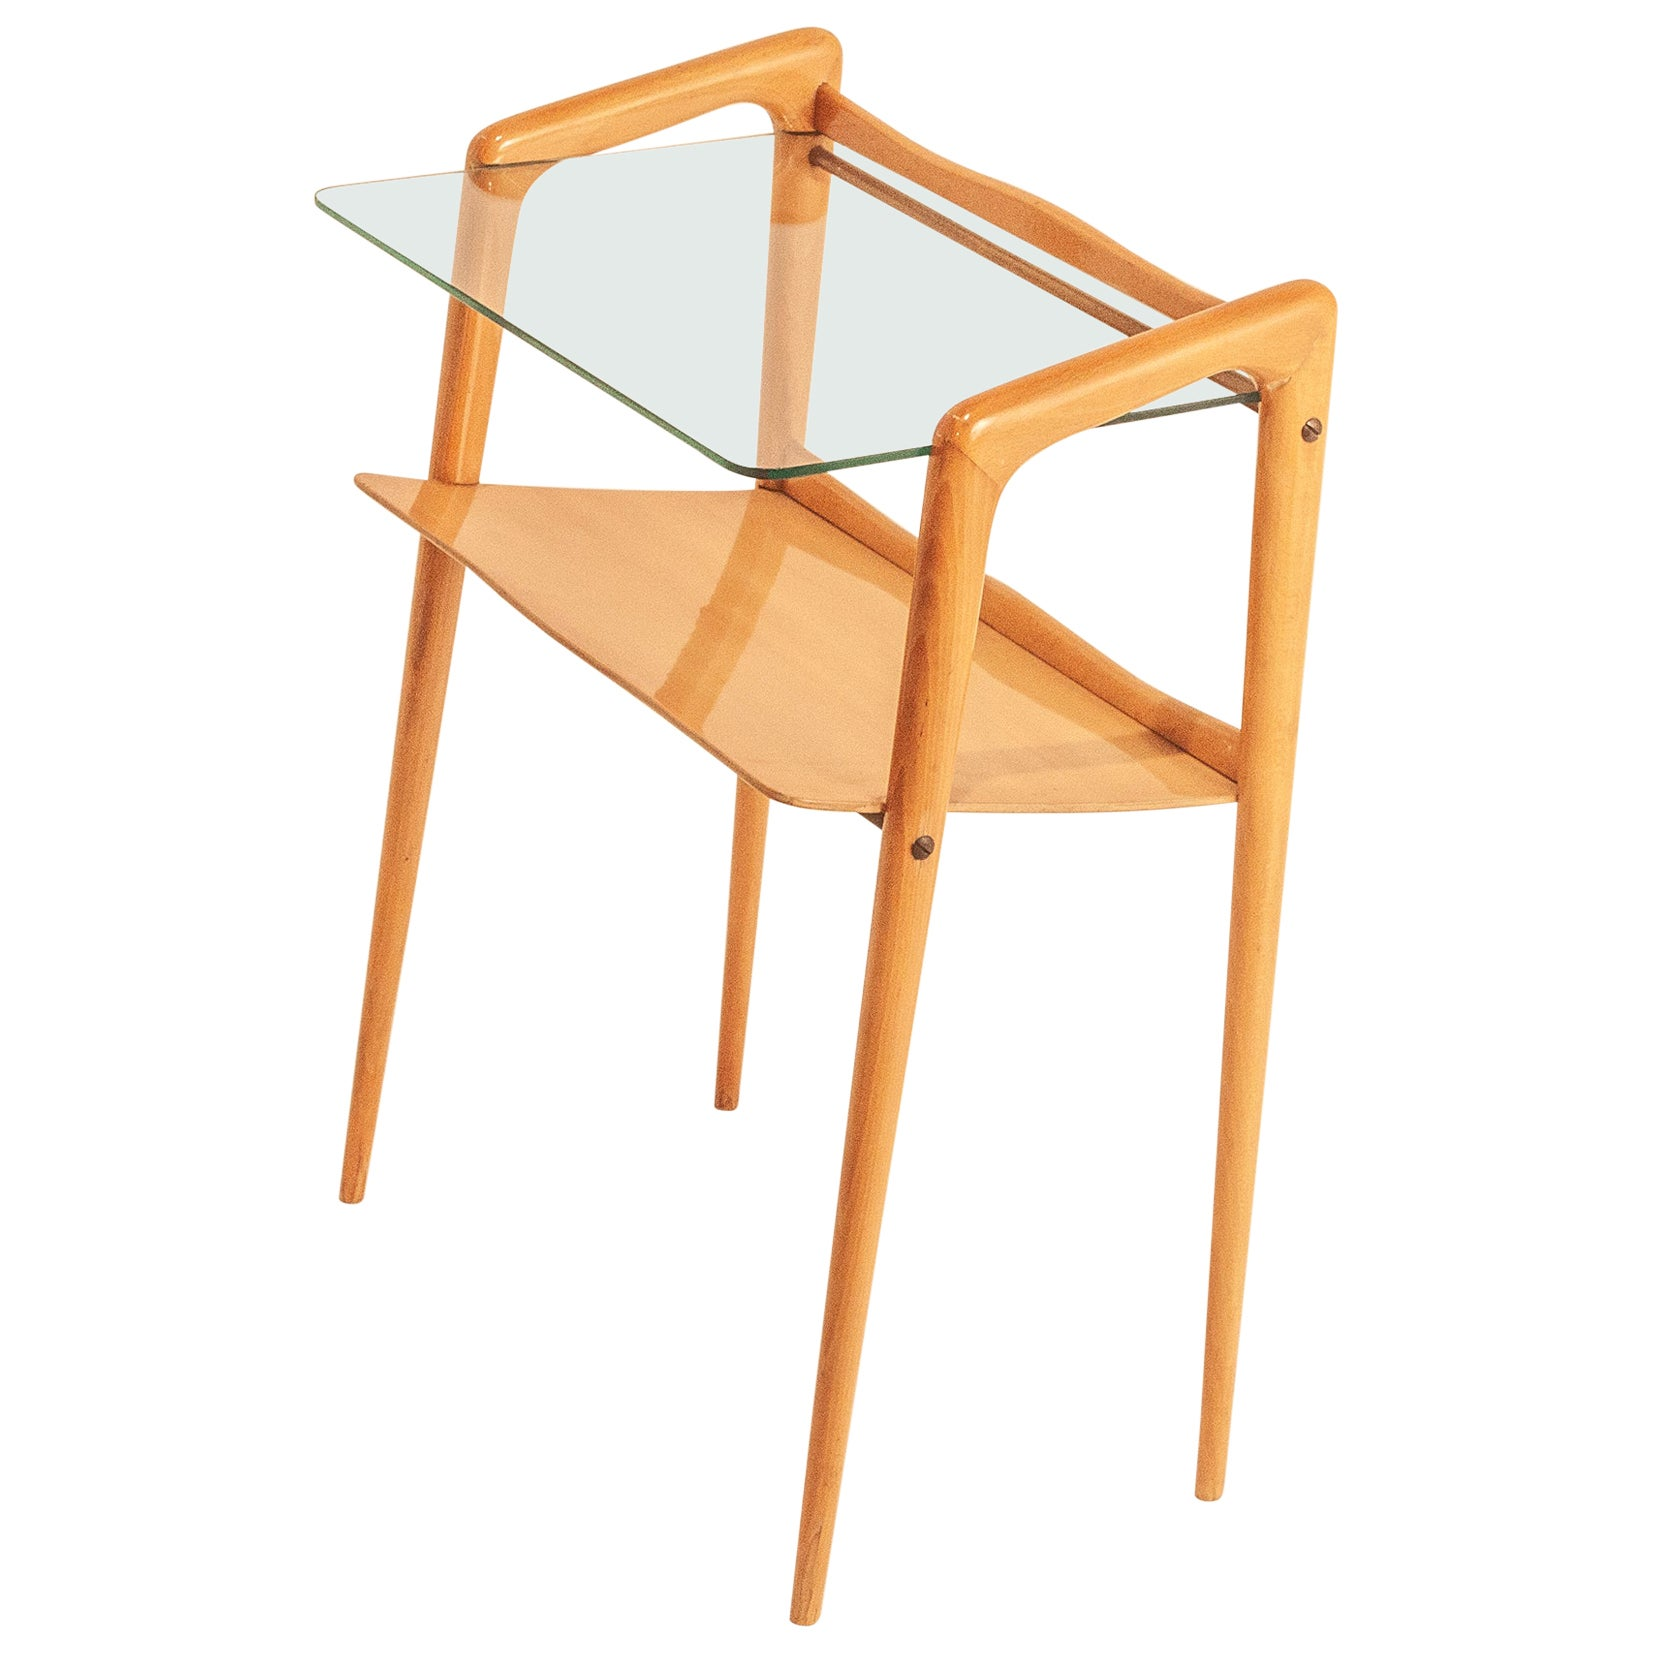 Italian Side Table designed by  Ico Parisi, Wood and Clear Glass, 1950s